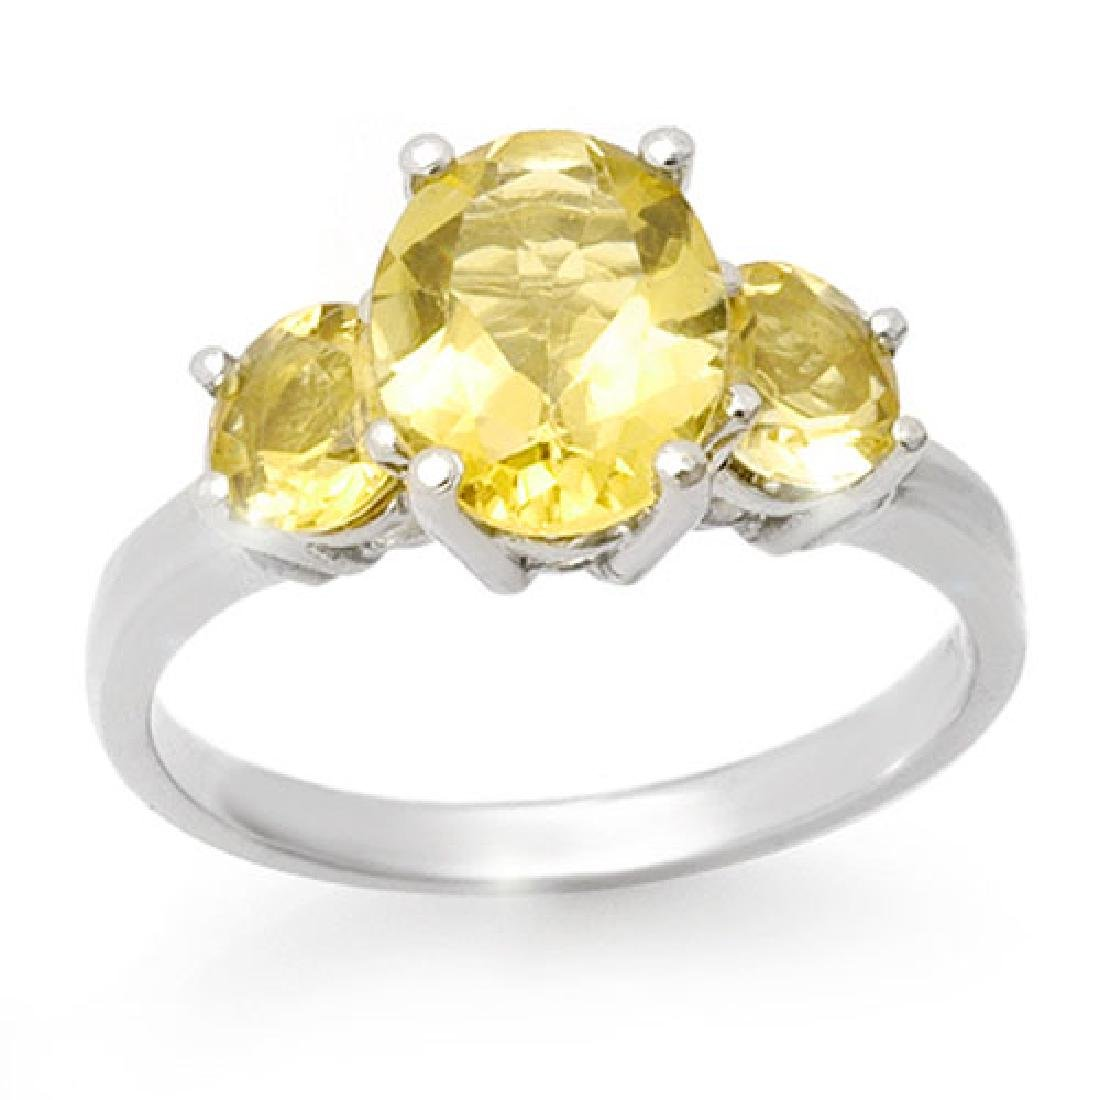 2.55 CTW Citrine Ring 10K White Gold